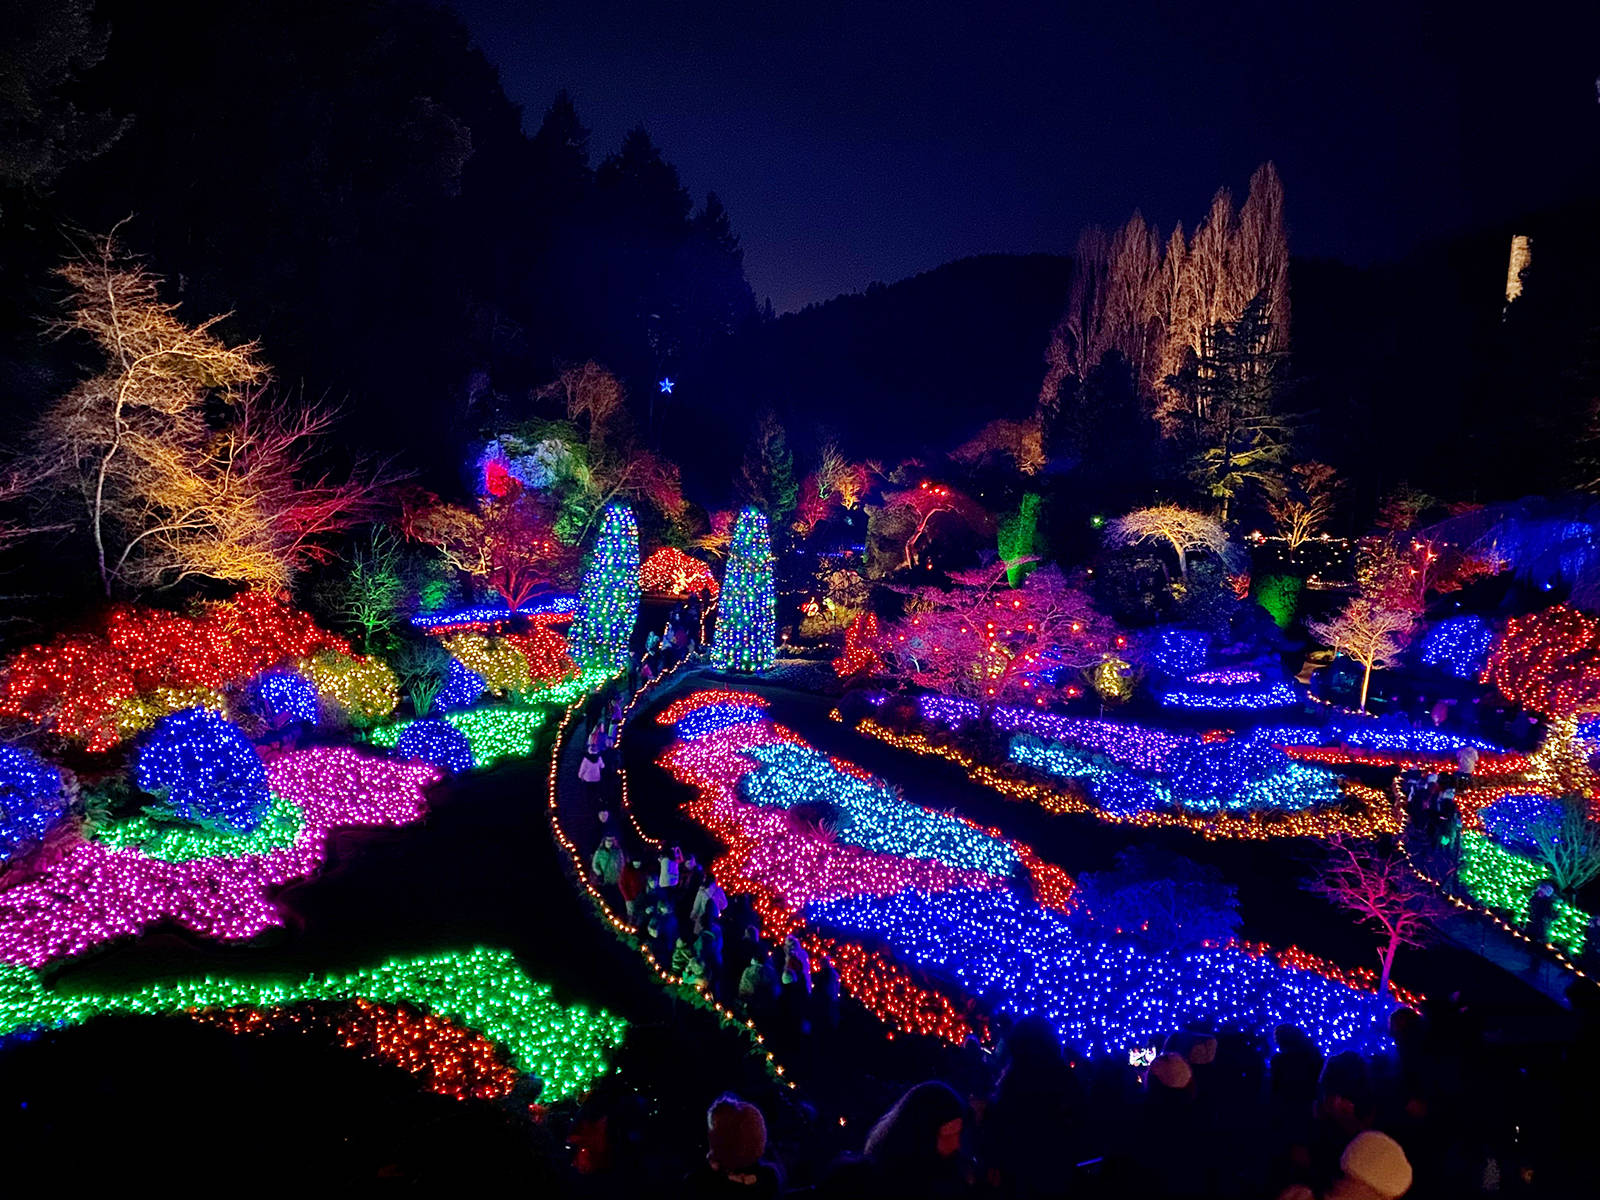 The Sunken Garden is one of the most-photographed parts of The Butchart Gardens no matter what the season. Jen Blyth photo.